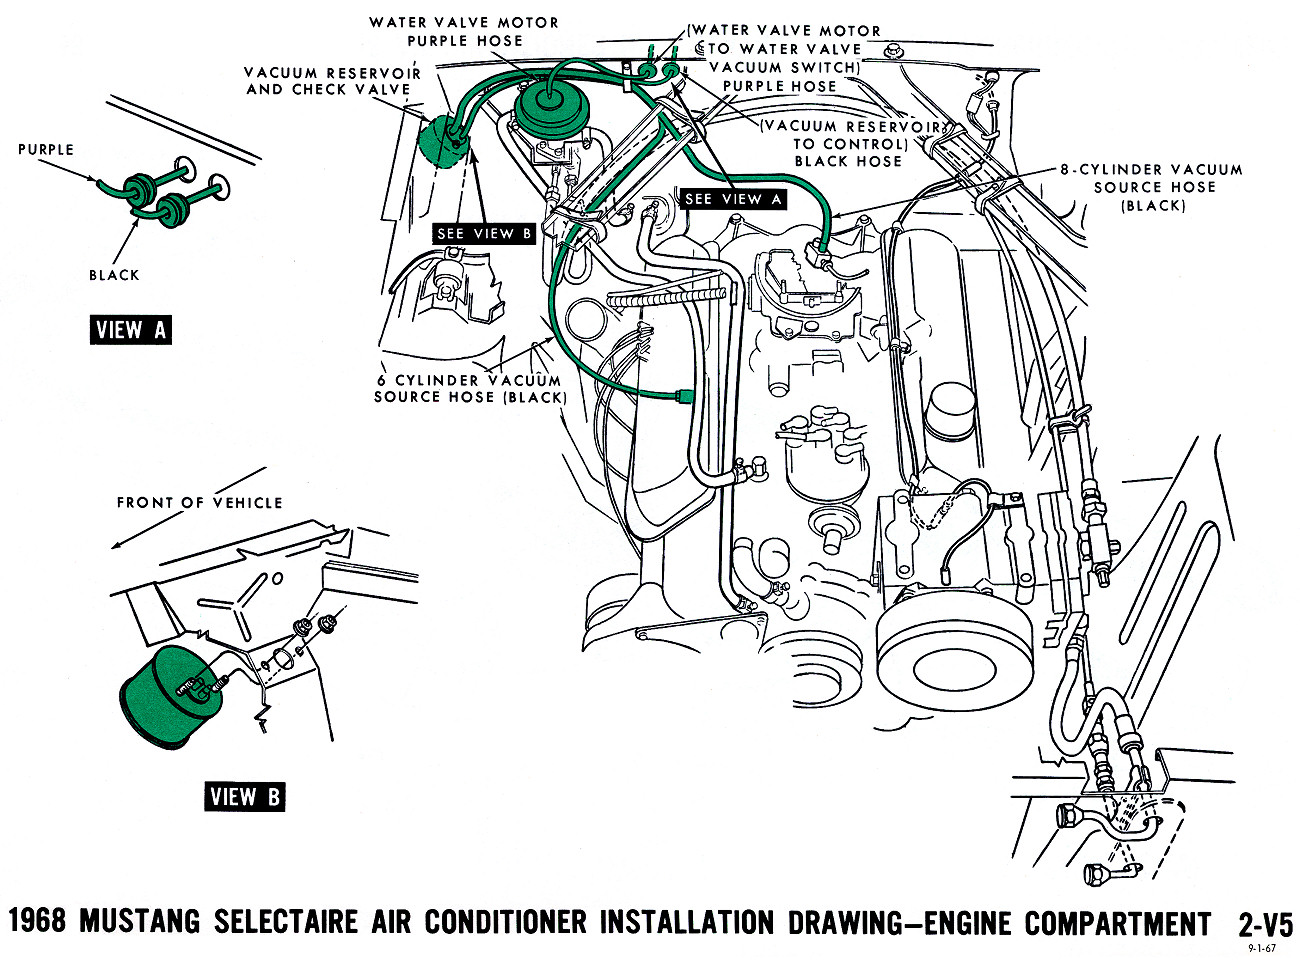 68 mustang vacuum diagram wiring diagram technic ford mustang vacuum line diagram in addition 1966 ford mustang [ 1300 x 963 Pixel ]